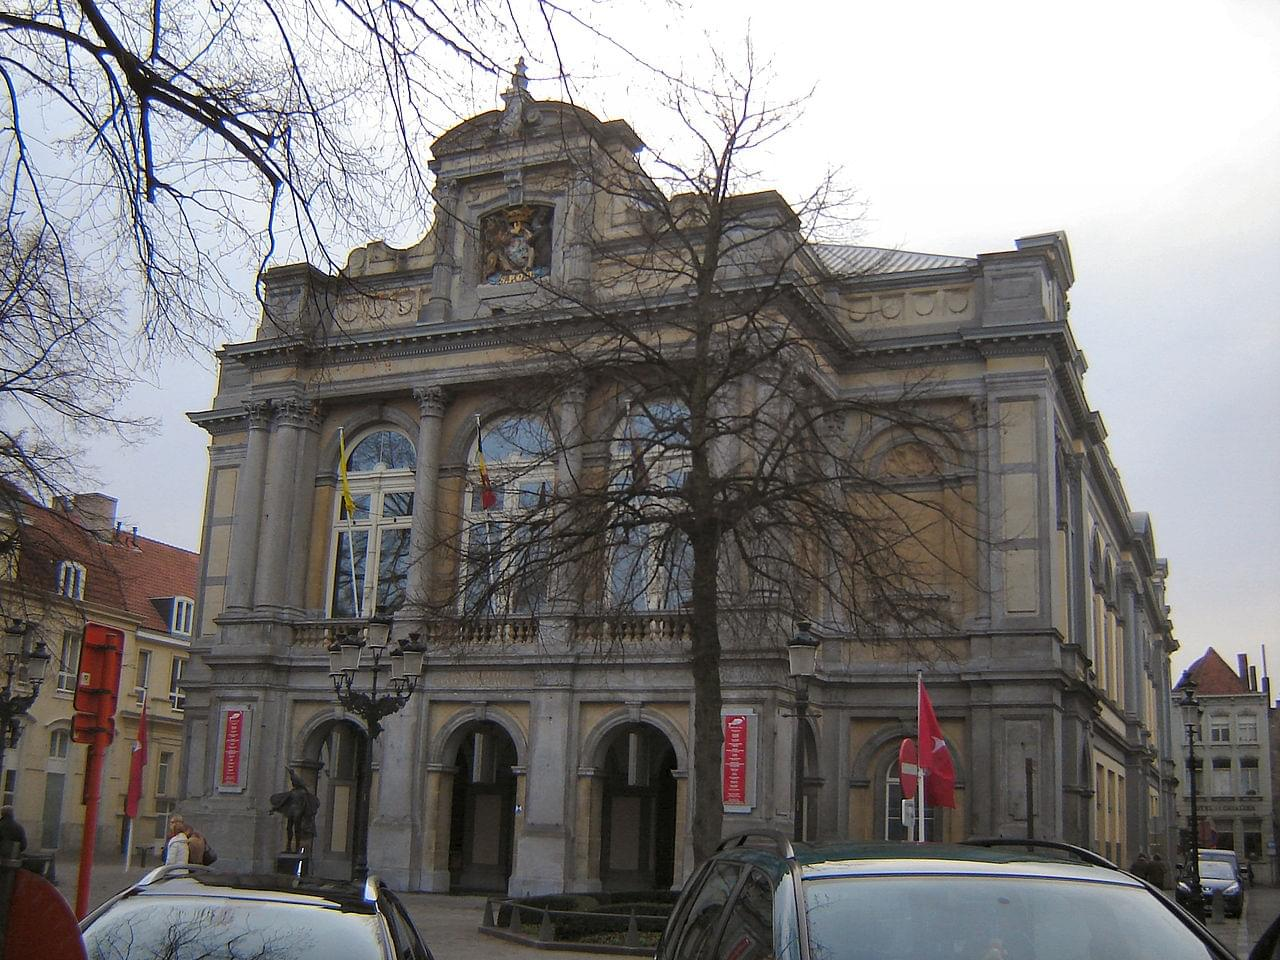 The Royal City Theatre